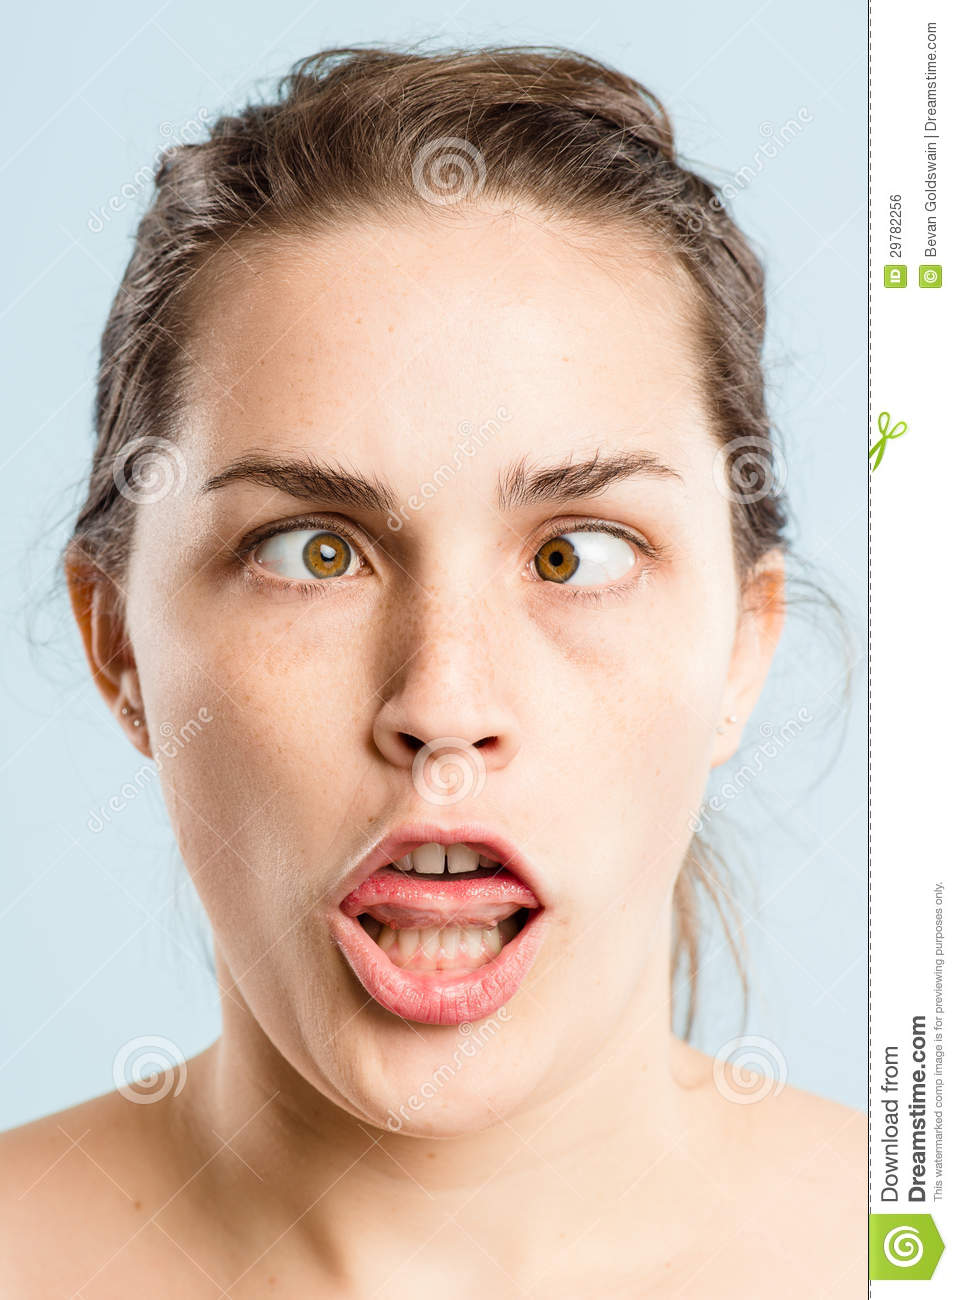 Funny Woman Portrait Real People High Definition Blue -3266